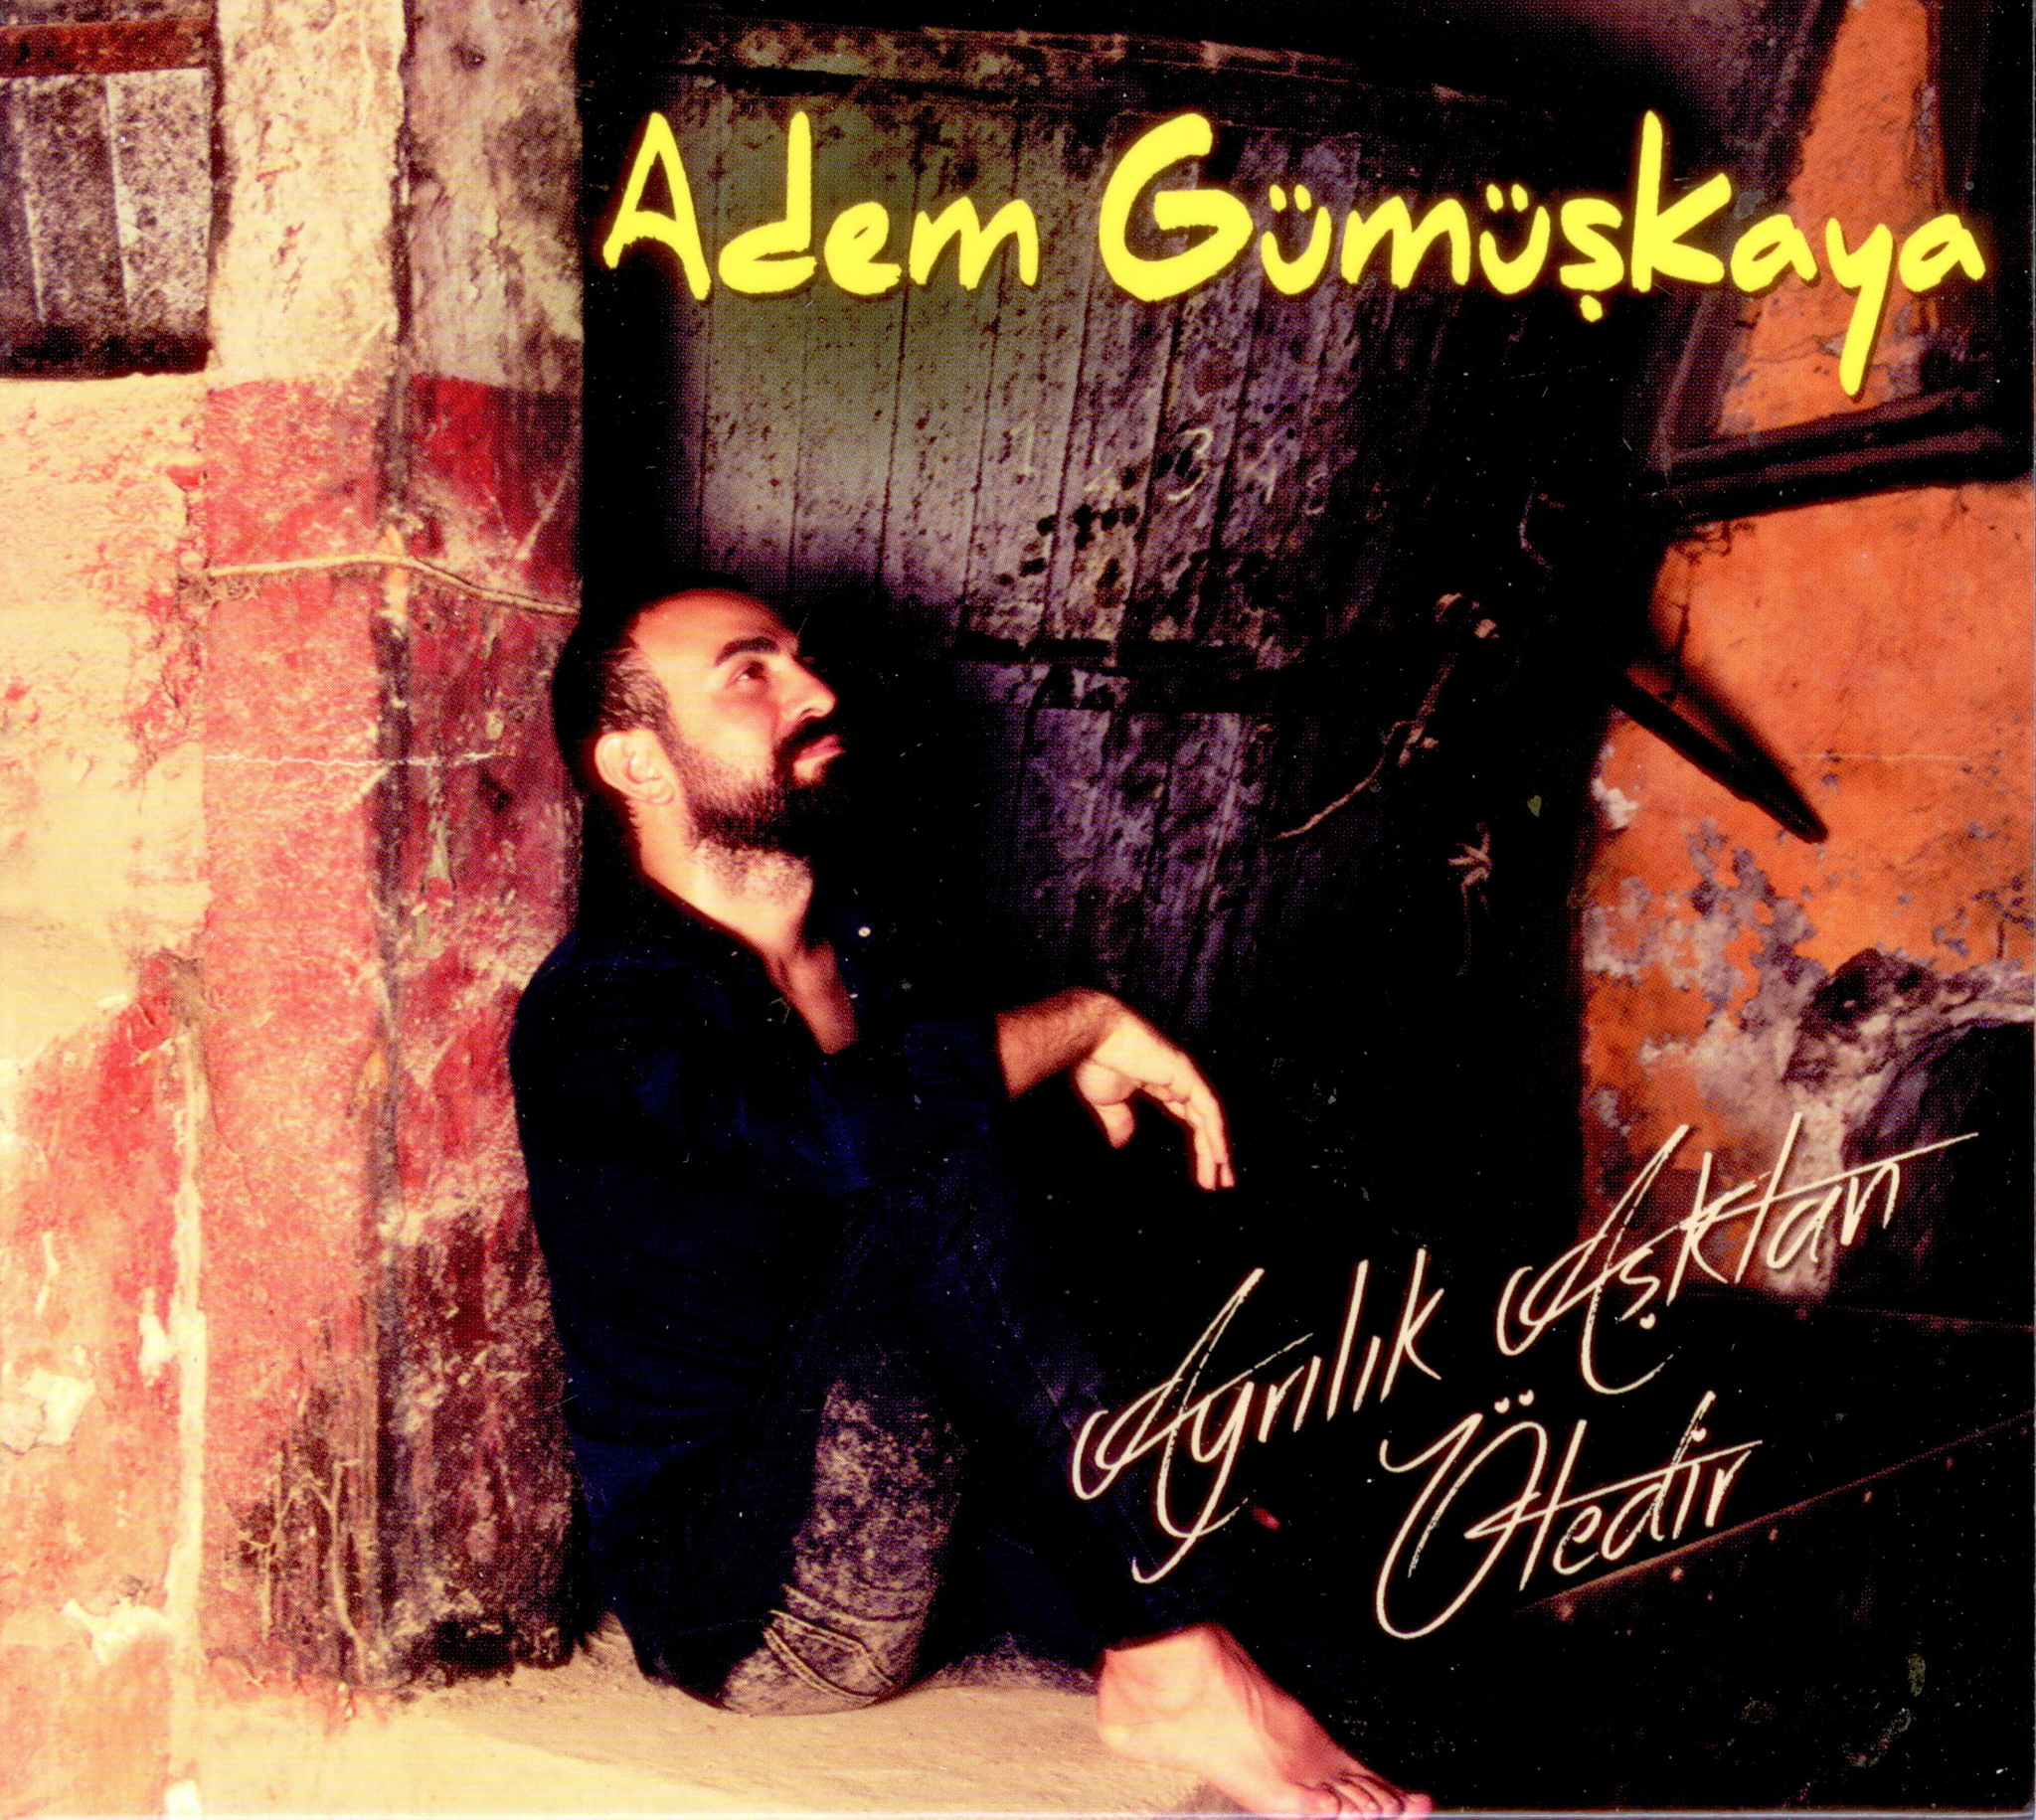 Adem G�m��kaya - Ayr�l�k A�ktan �tedir (2014) Full Alb�m (1411 Kbps) + cover